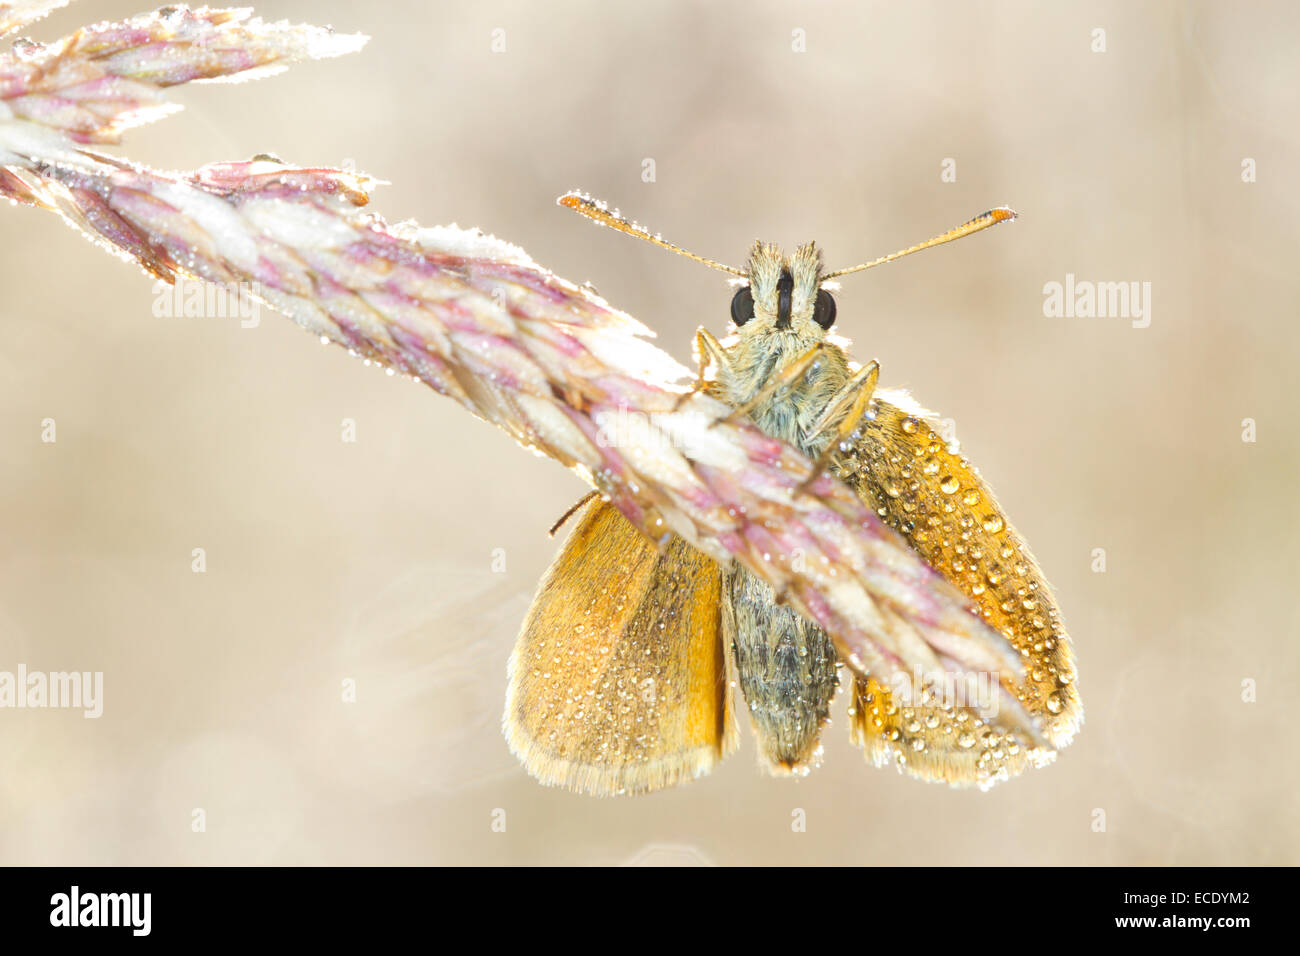 Small Skipper (Thymelicus sylvestris) adult butterfly roosting amongst grasses on a dewy morning. Powys, Wales. - Stock Image